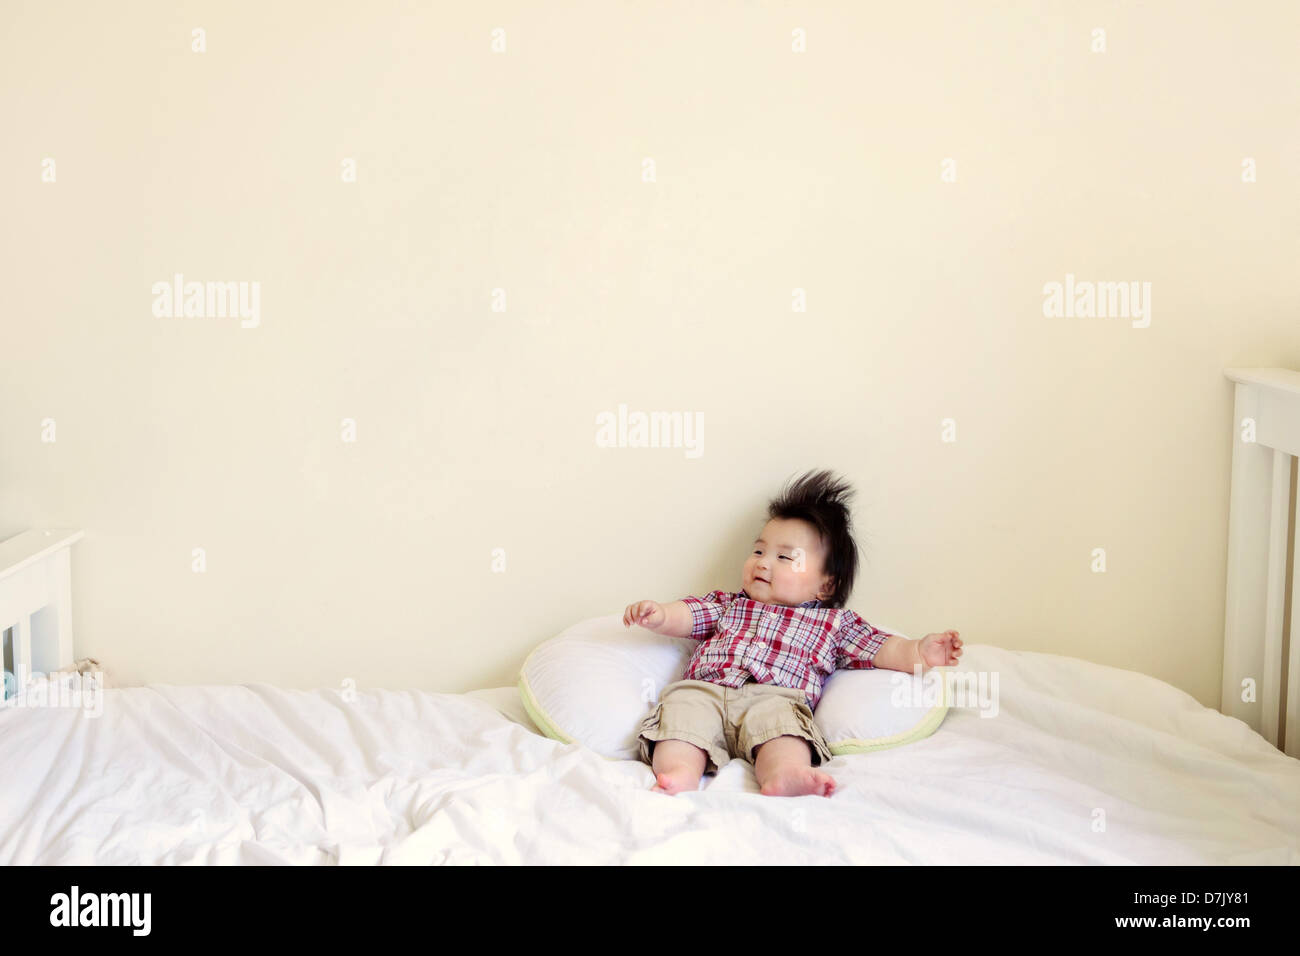 Bed Stock Photos Amp Bed Stock Images Alamy